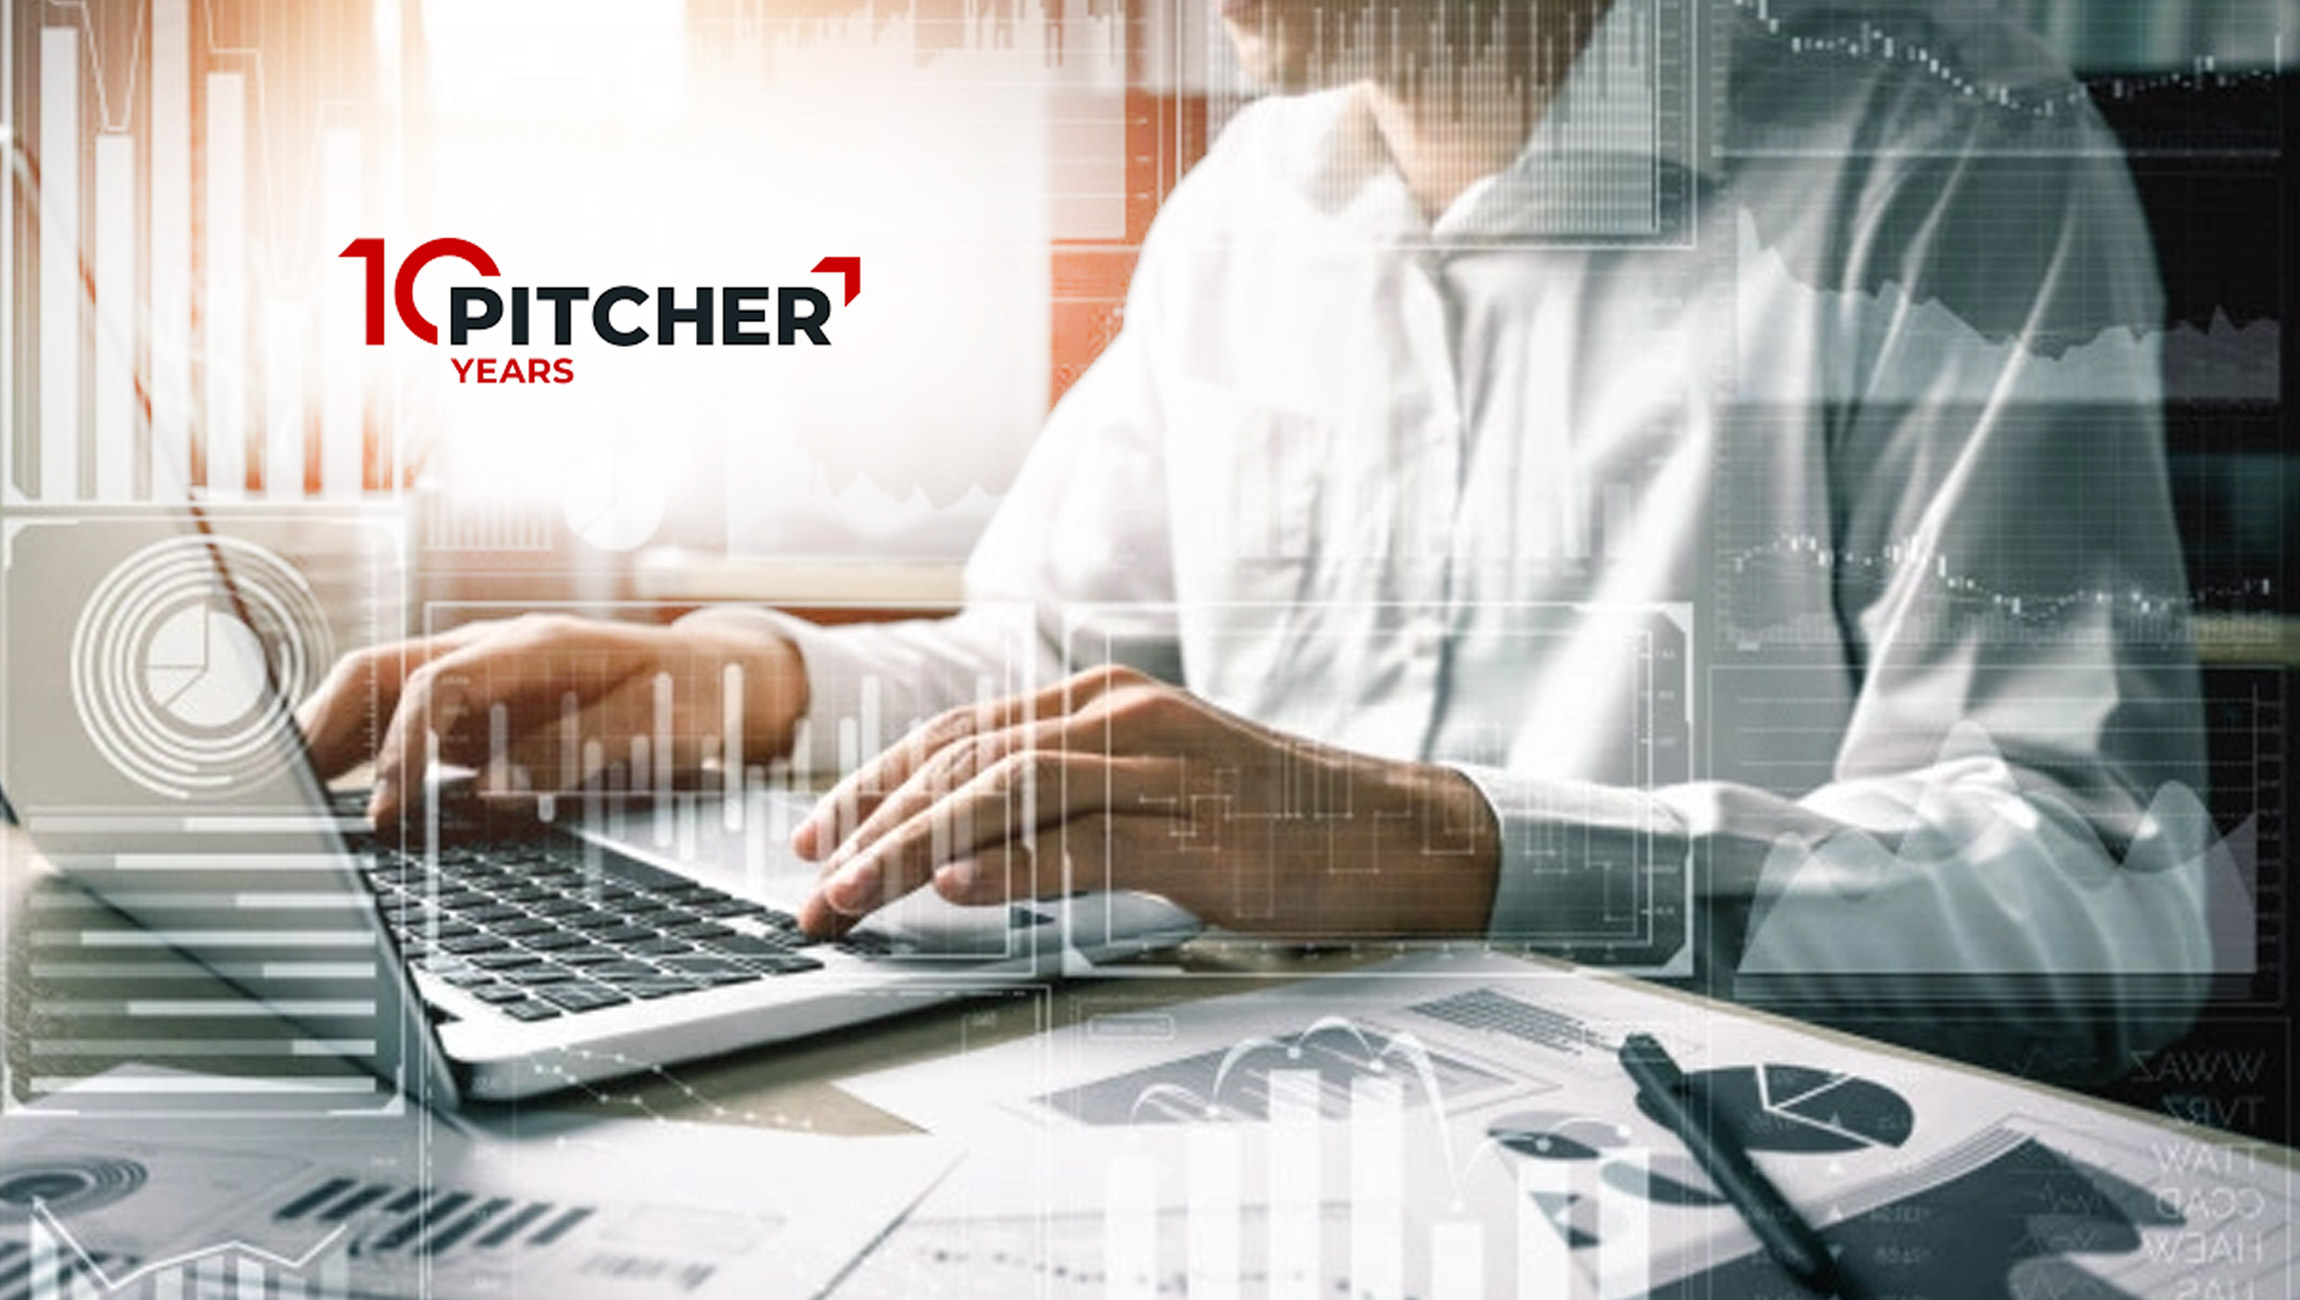 Pitcher's Super App Wins 2021 Product of the Year Award for Sales and Marketing Technology from Business Intelligence Group